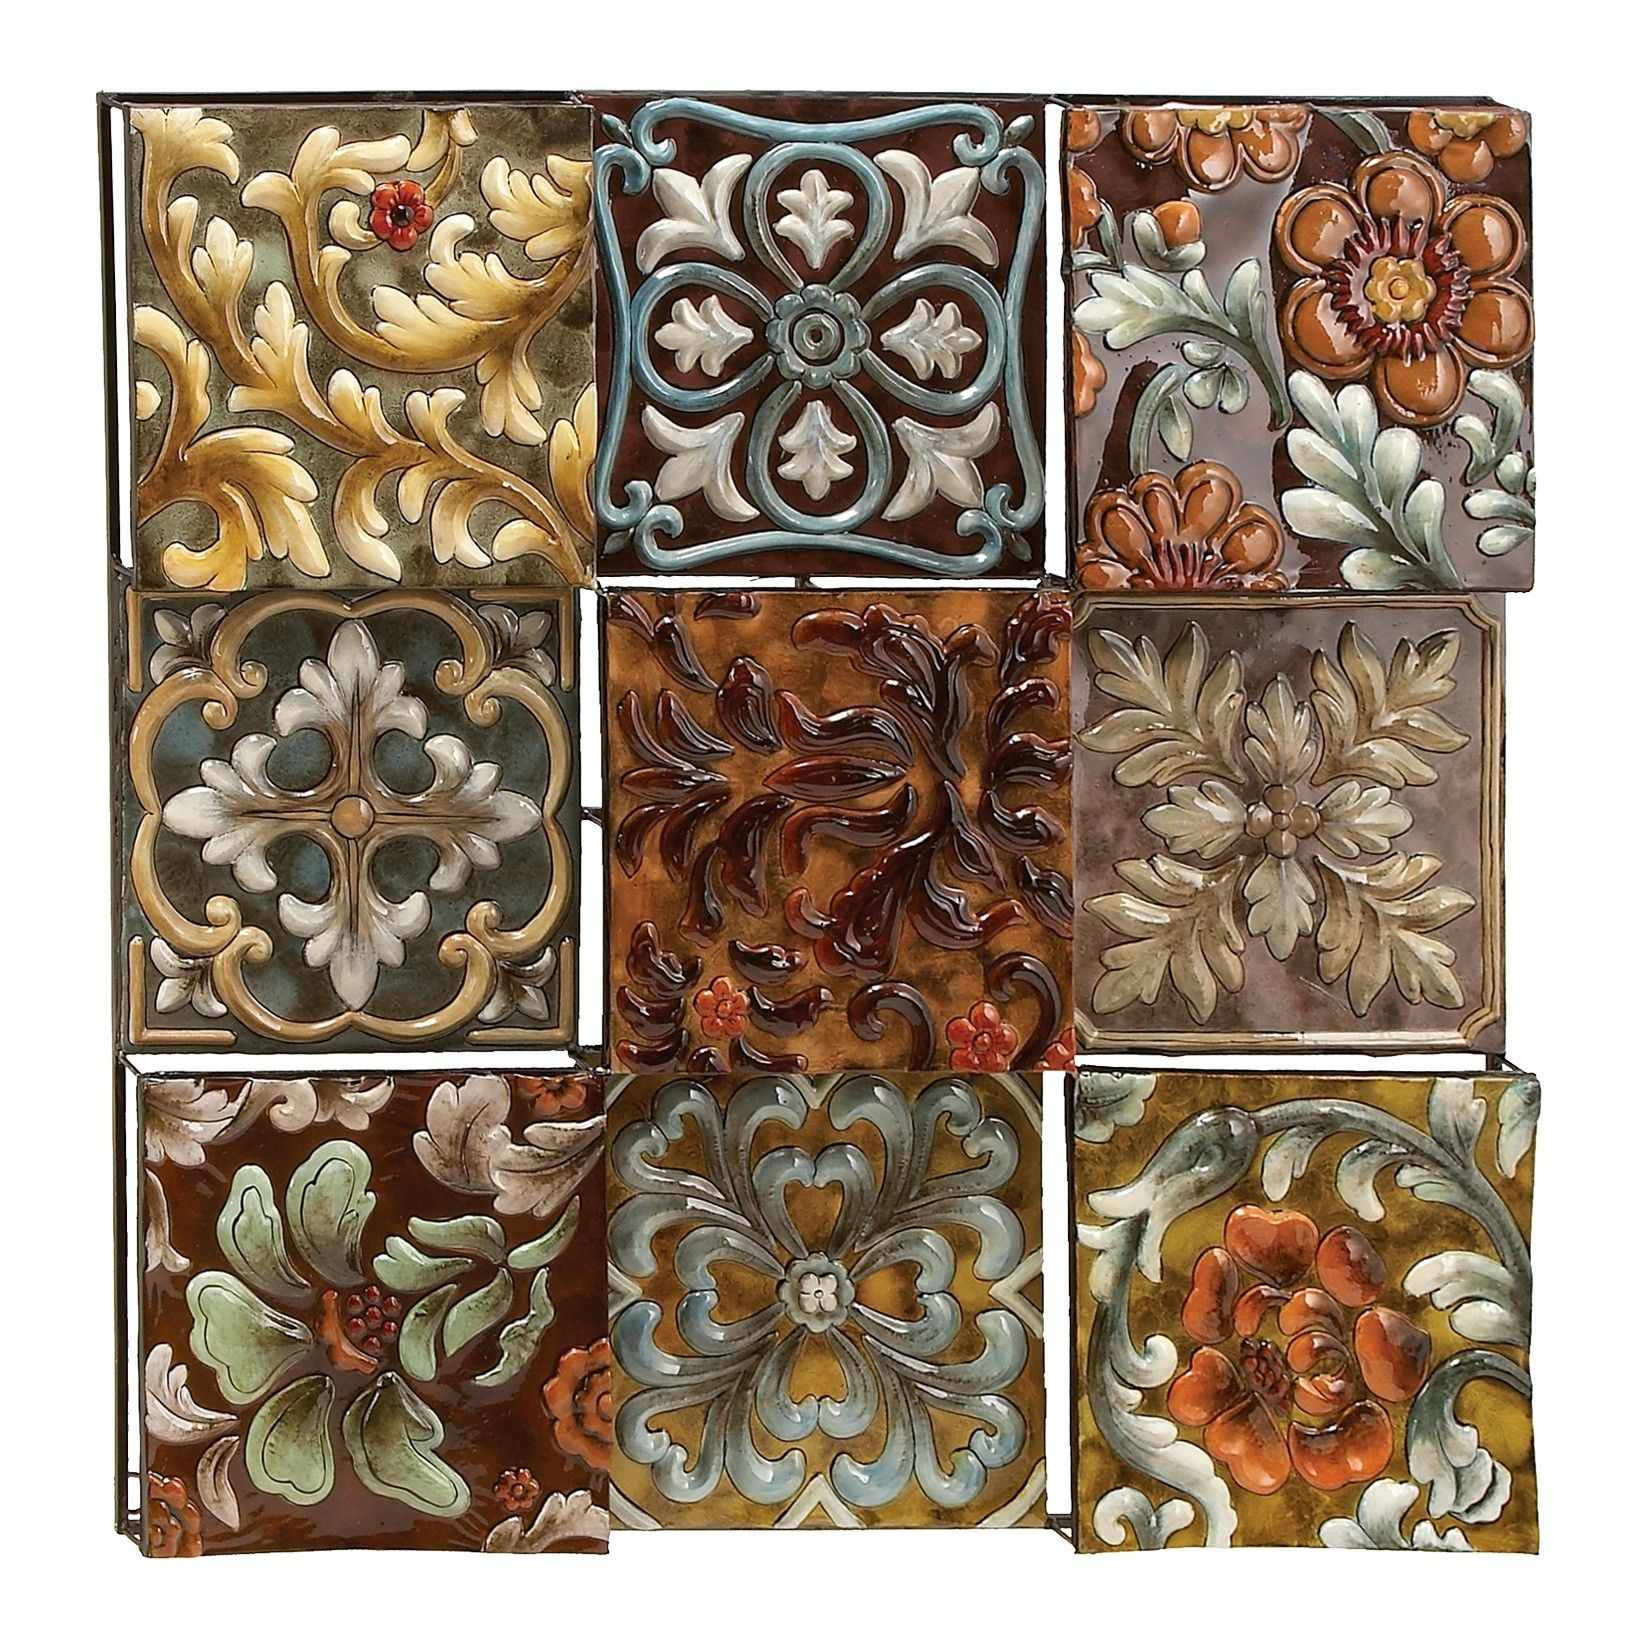 Wall flower décor ornaments pinterest metal walls wall décor